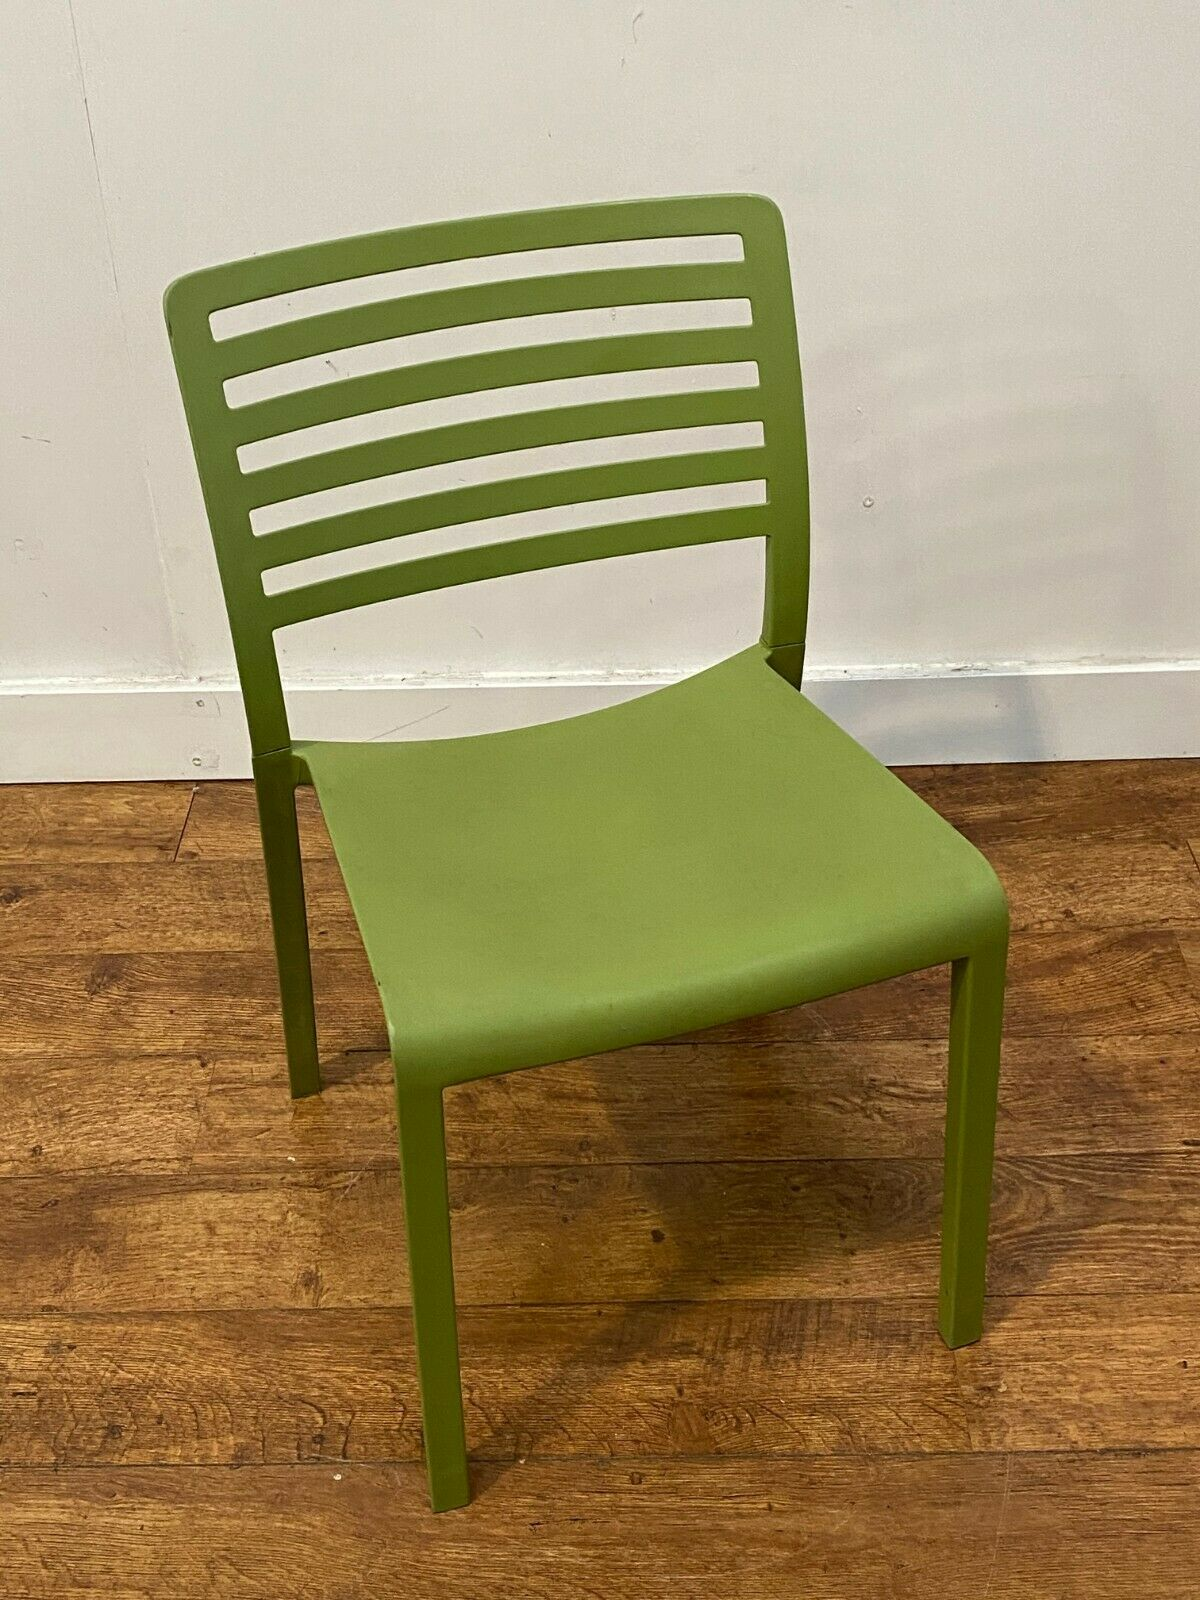 70x Fantastic Heavy Duty Commercial Grade Polypropylene Stacking Chair Mansfield, Nottinghamshire